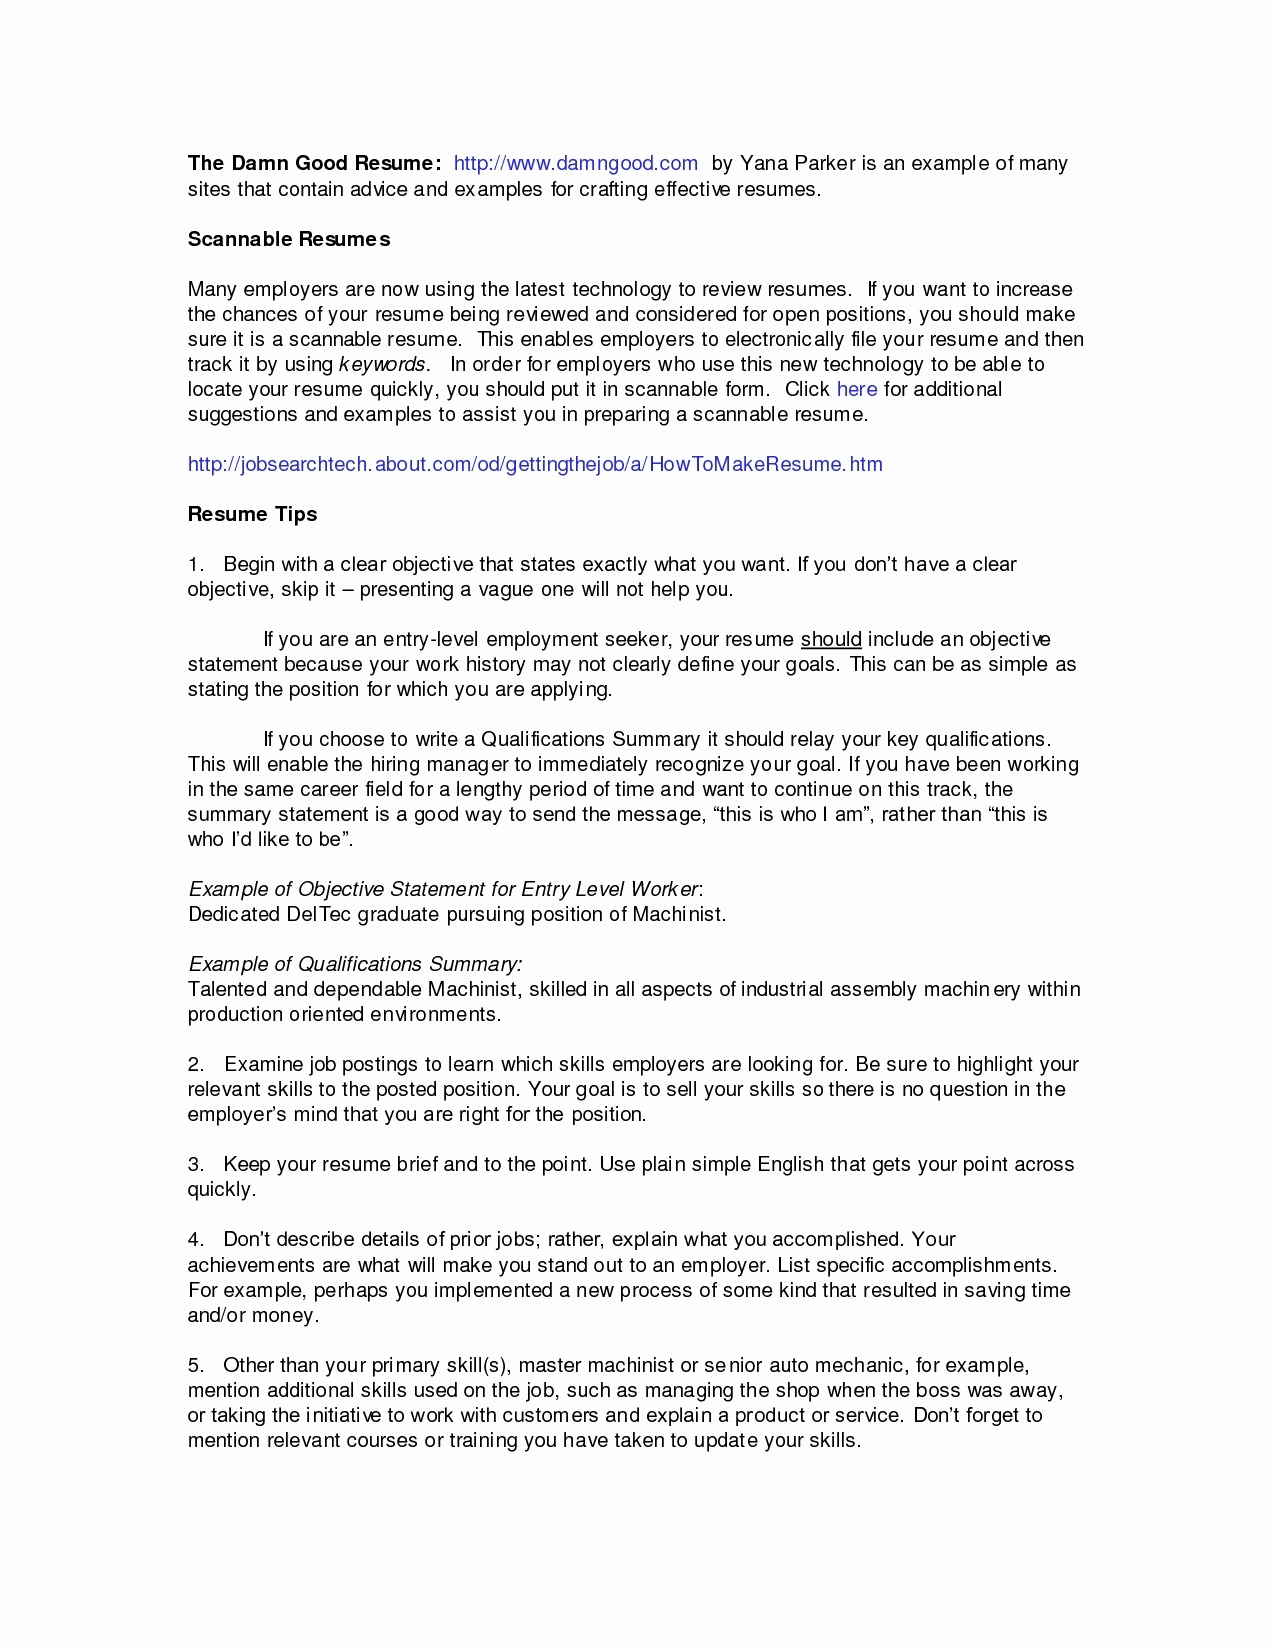 Resume Summary Section - Interest Section Resume Examples Fresh Sample Hobbies and